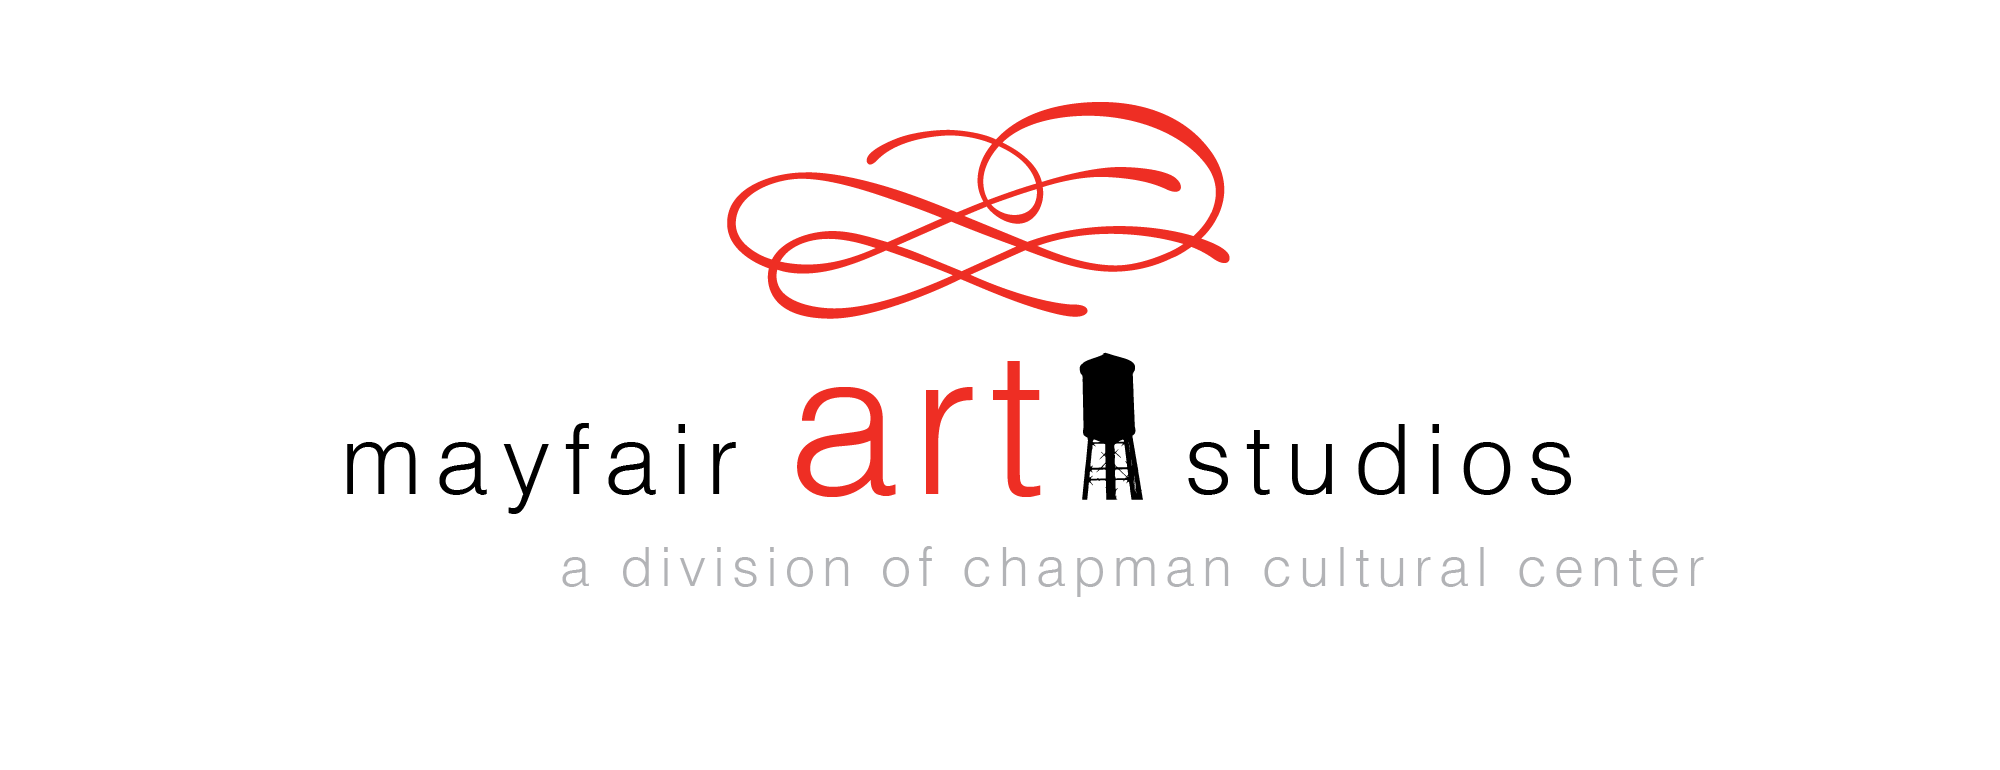 Mayfair Art Studios